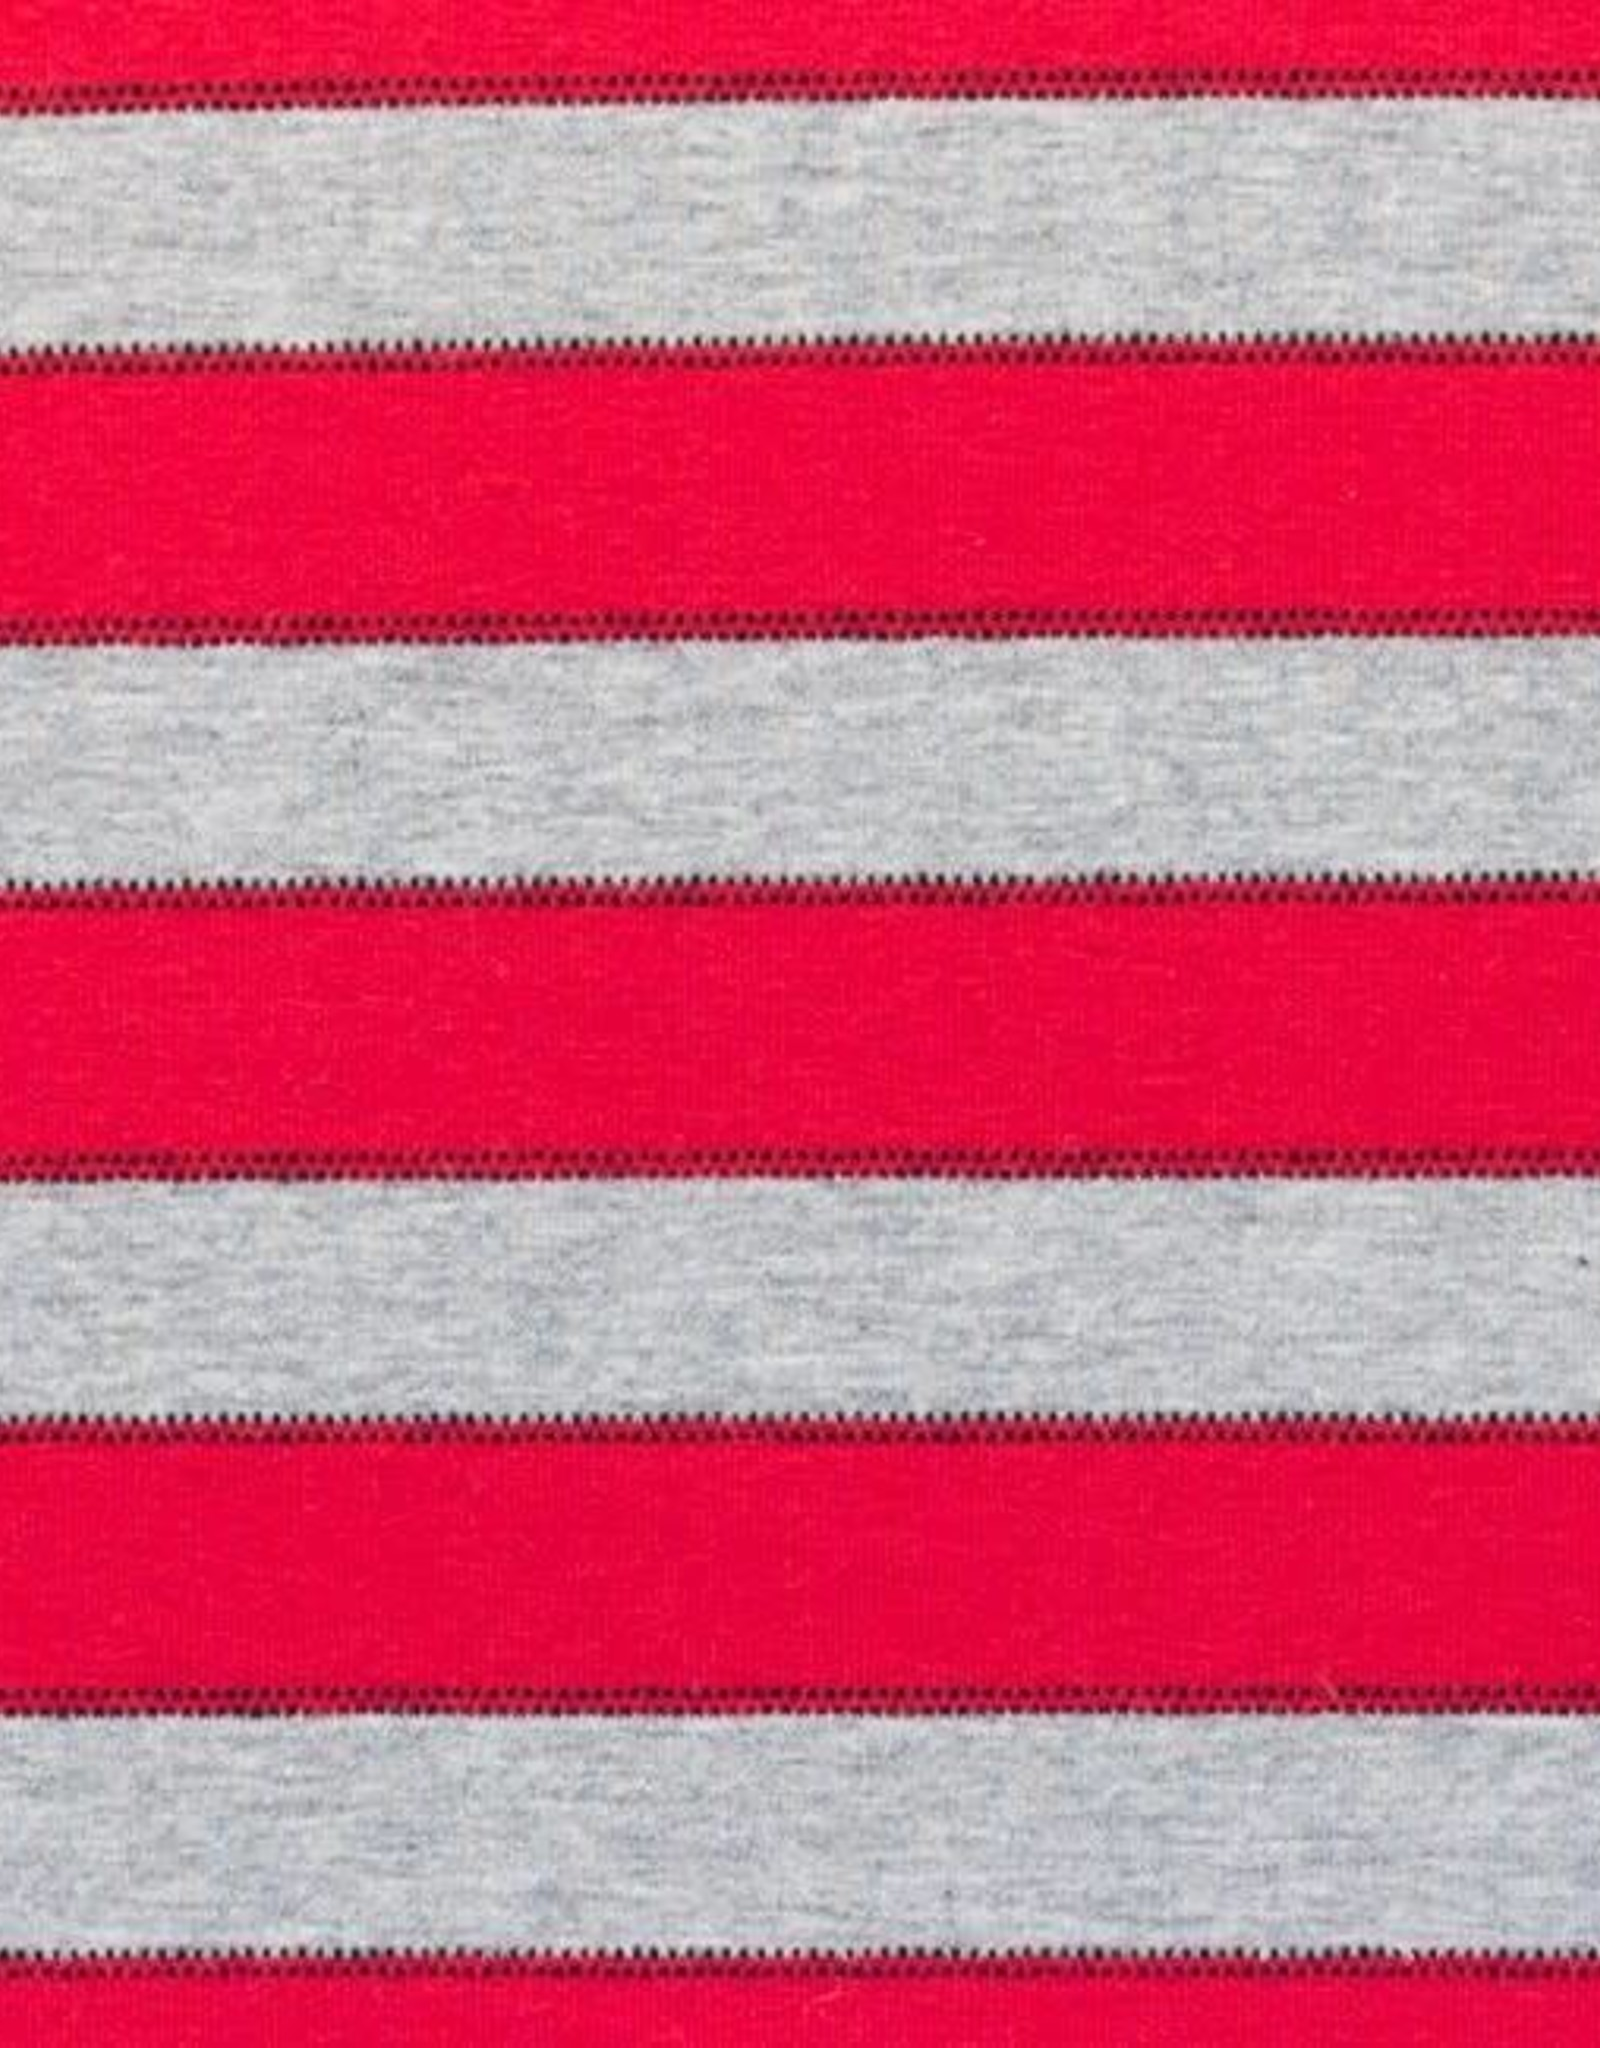 *Tricot Stripe With Dotted Line Red